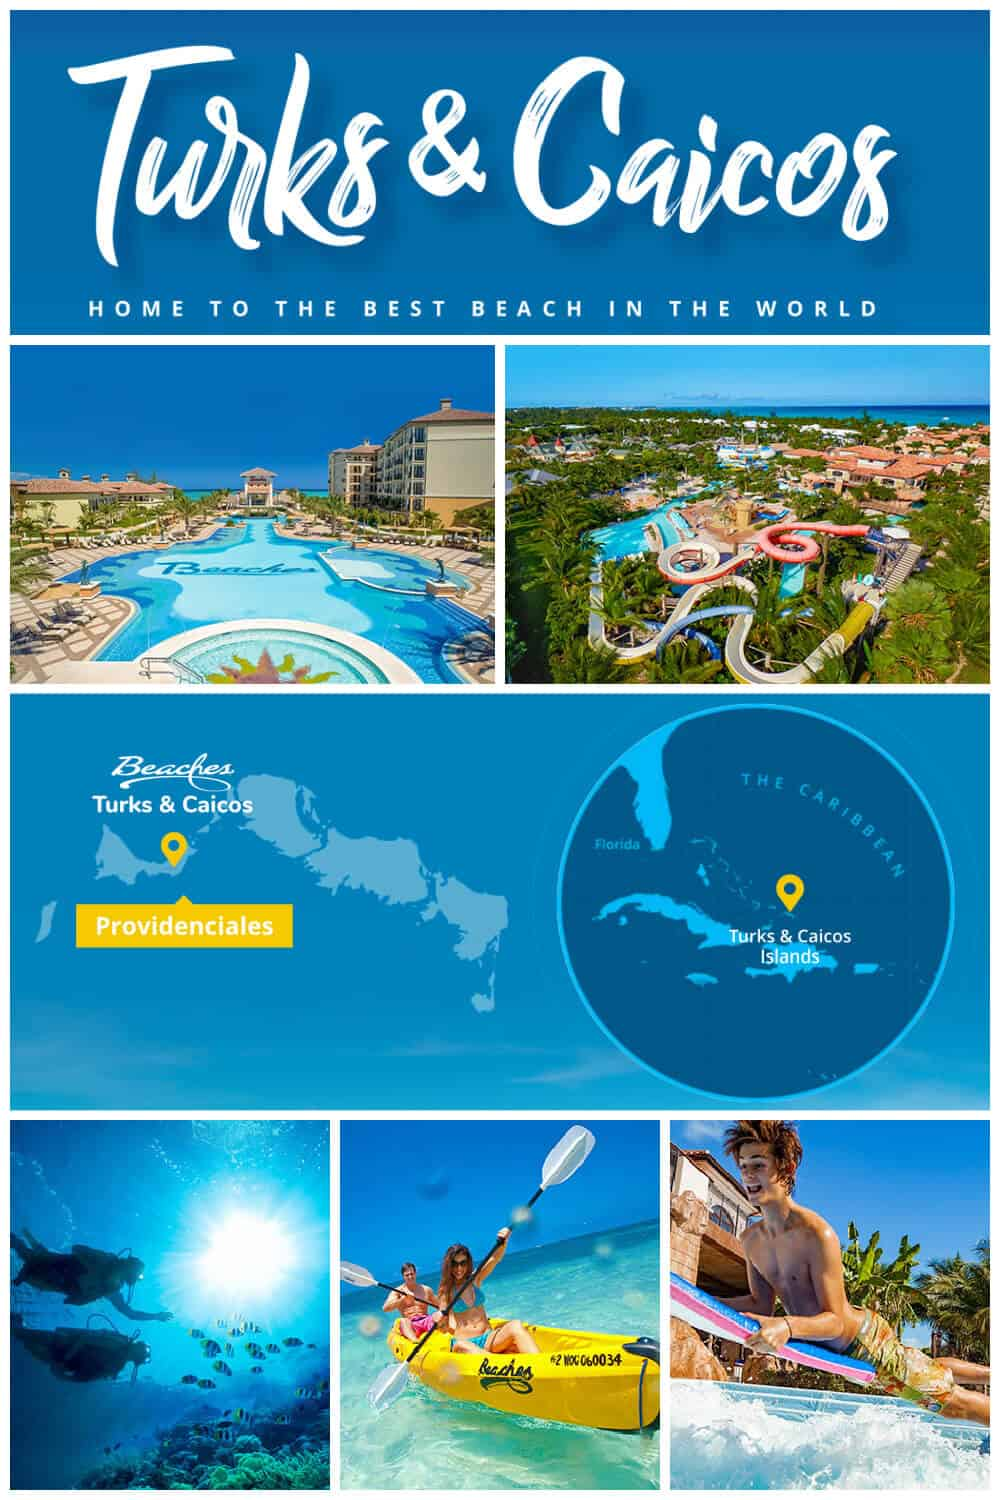 Turks and Caicos - Home to the Best Beach in the World - Vacation Destination